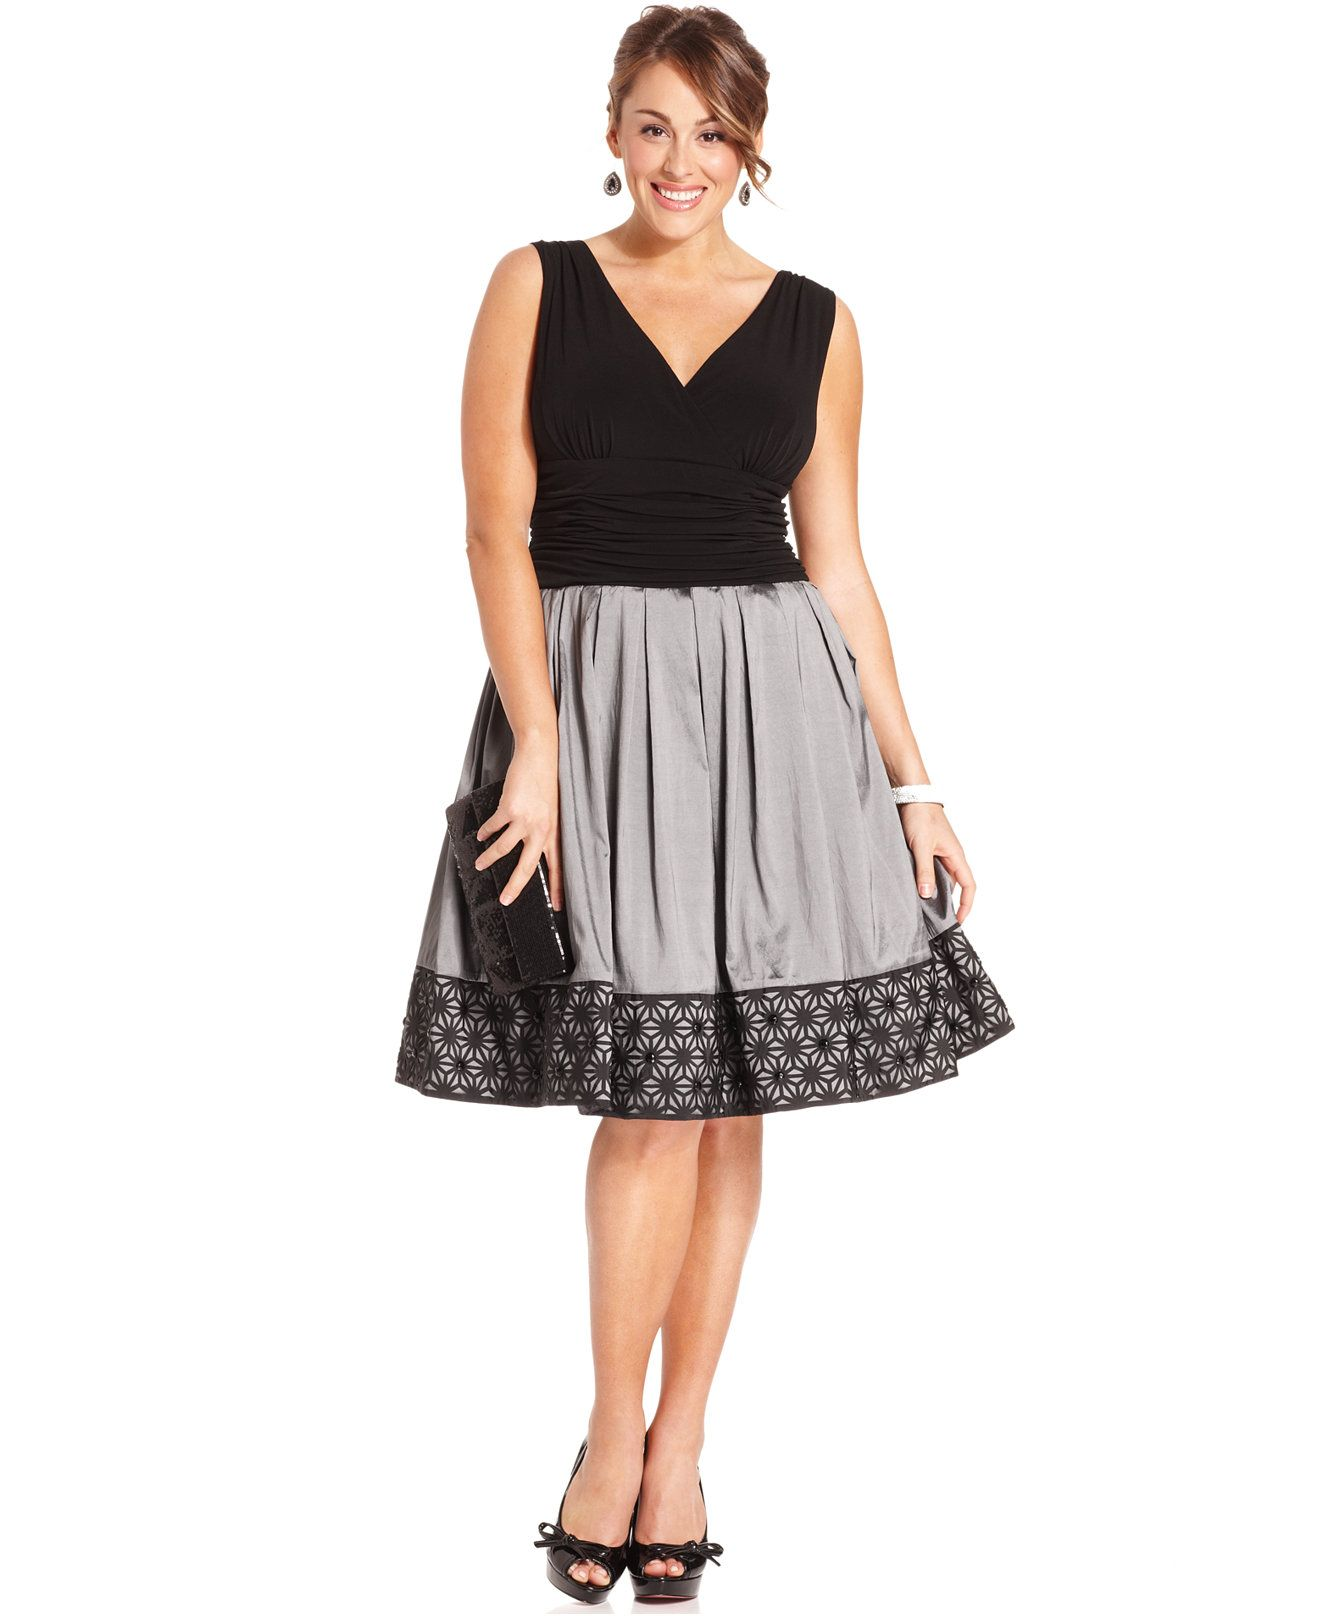 SL Fashions Plus Size Dress, Sleeveless A-Line Ruched ...